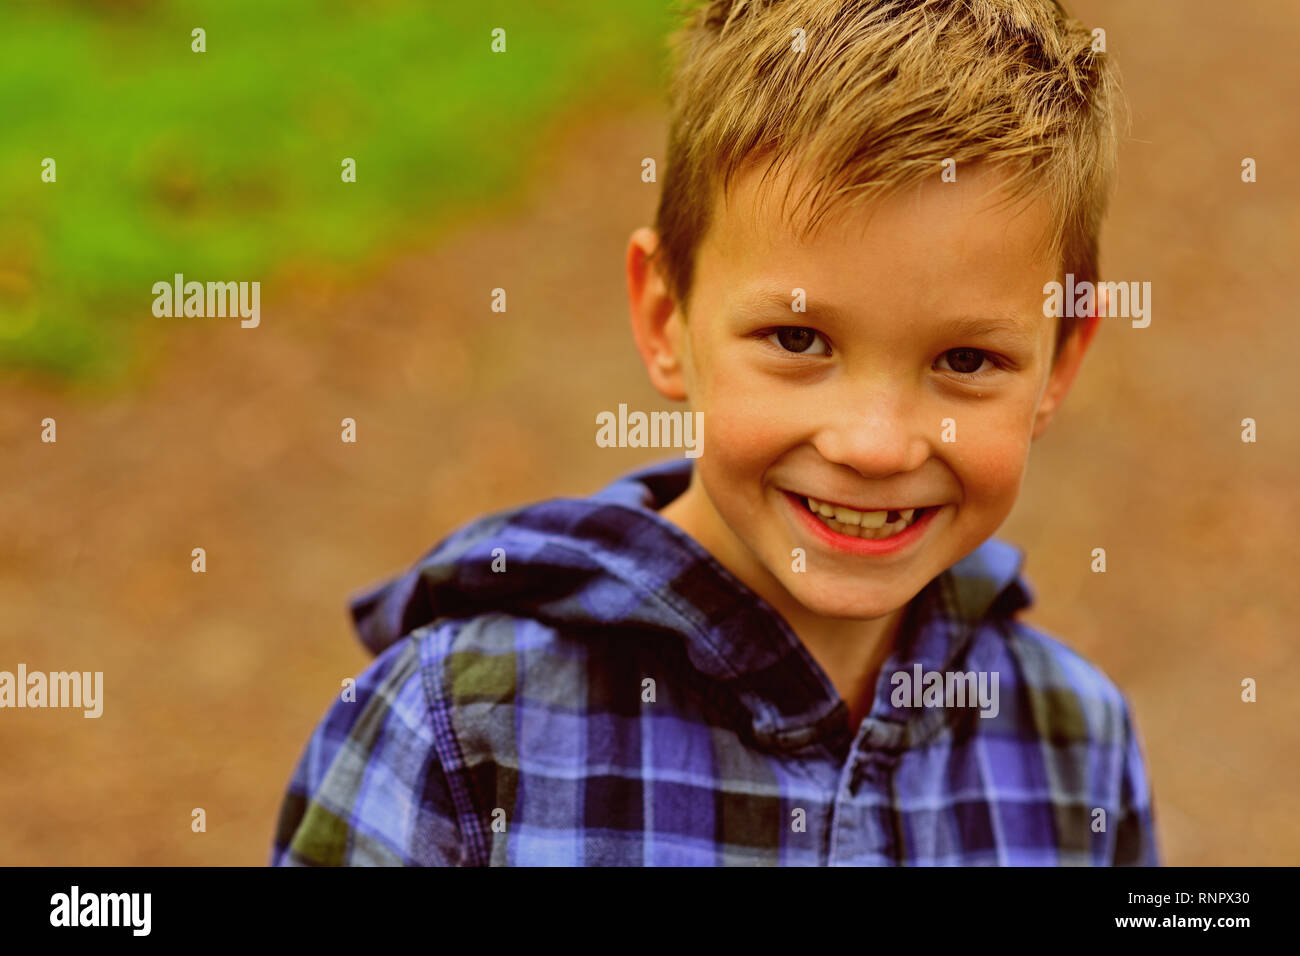 My childhood is great honestly. Happy boy. Small boy happy smiling. Small child enjoy childhood fun. Carefree days - Stock Image